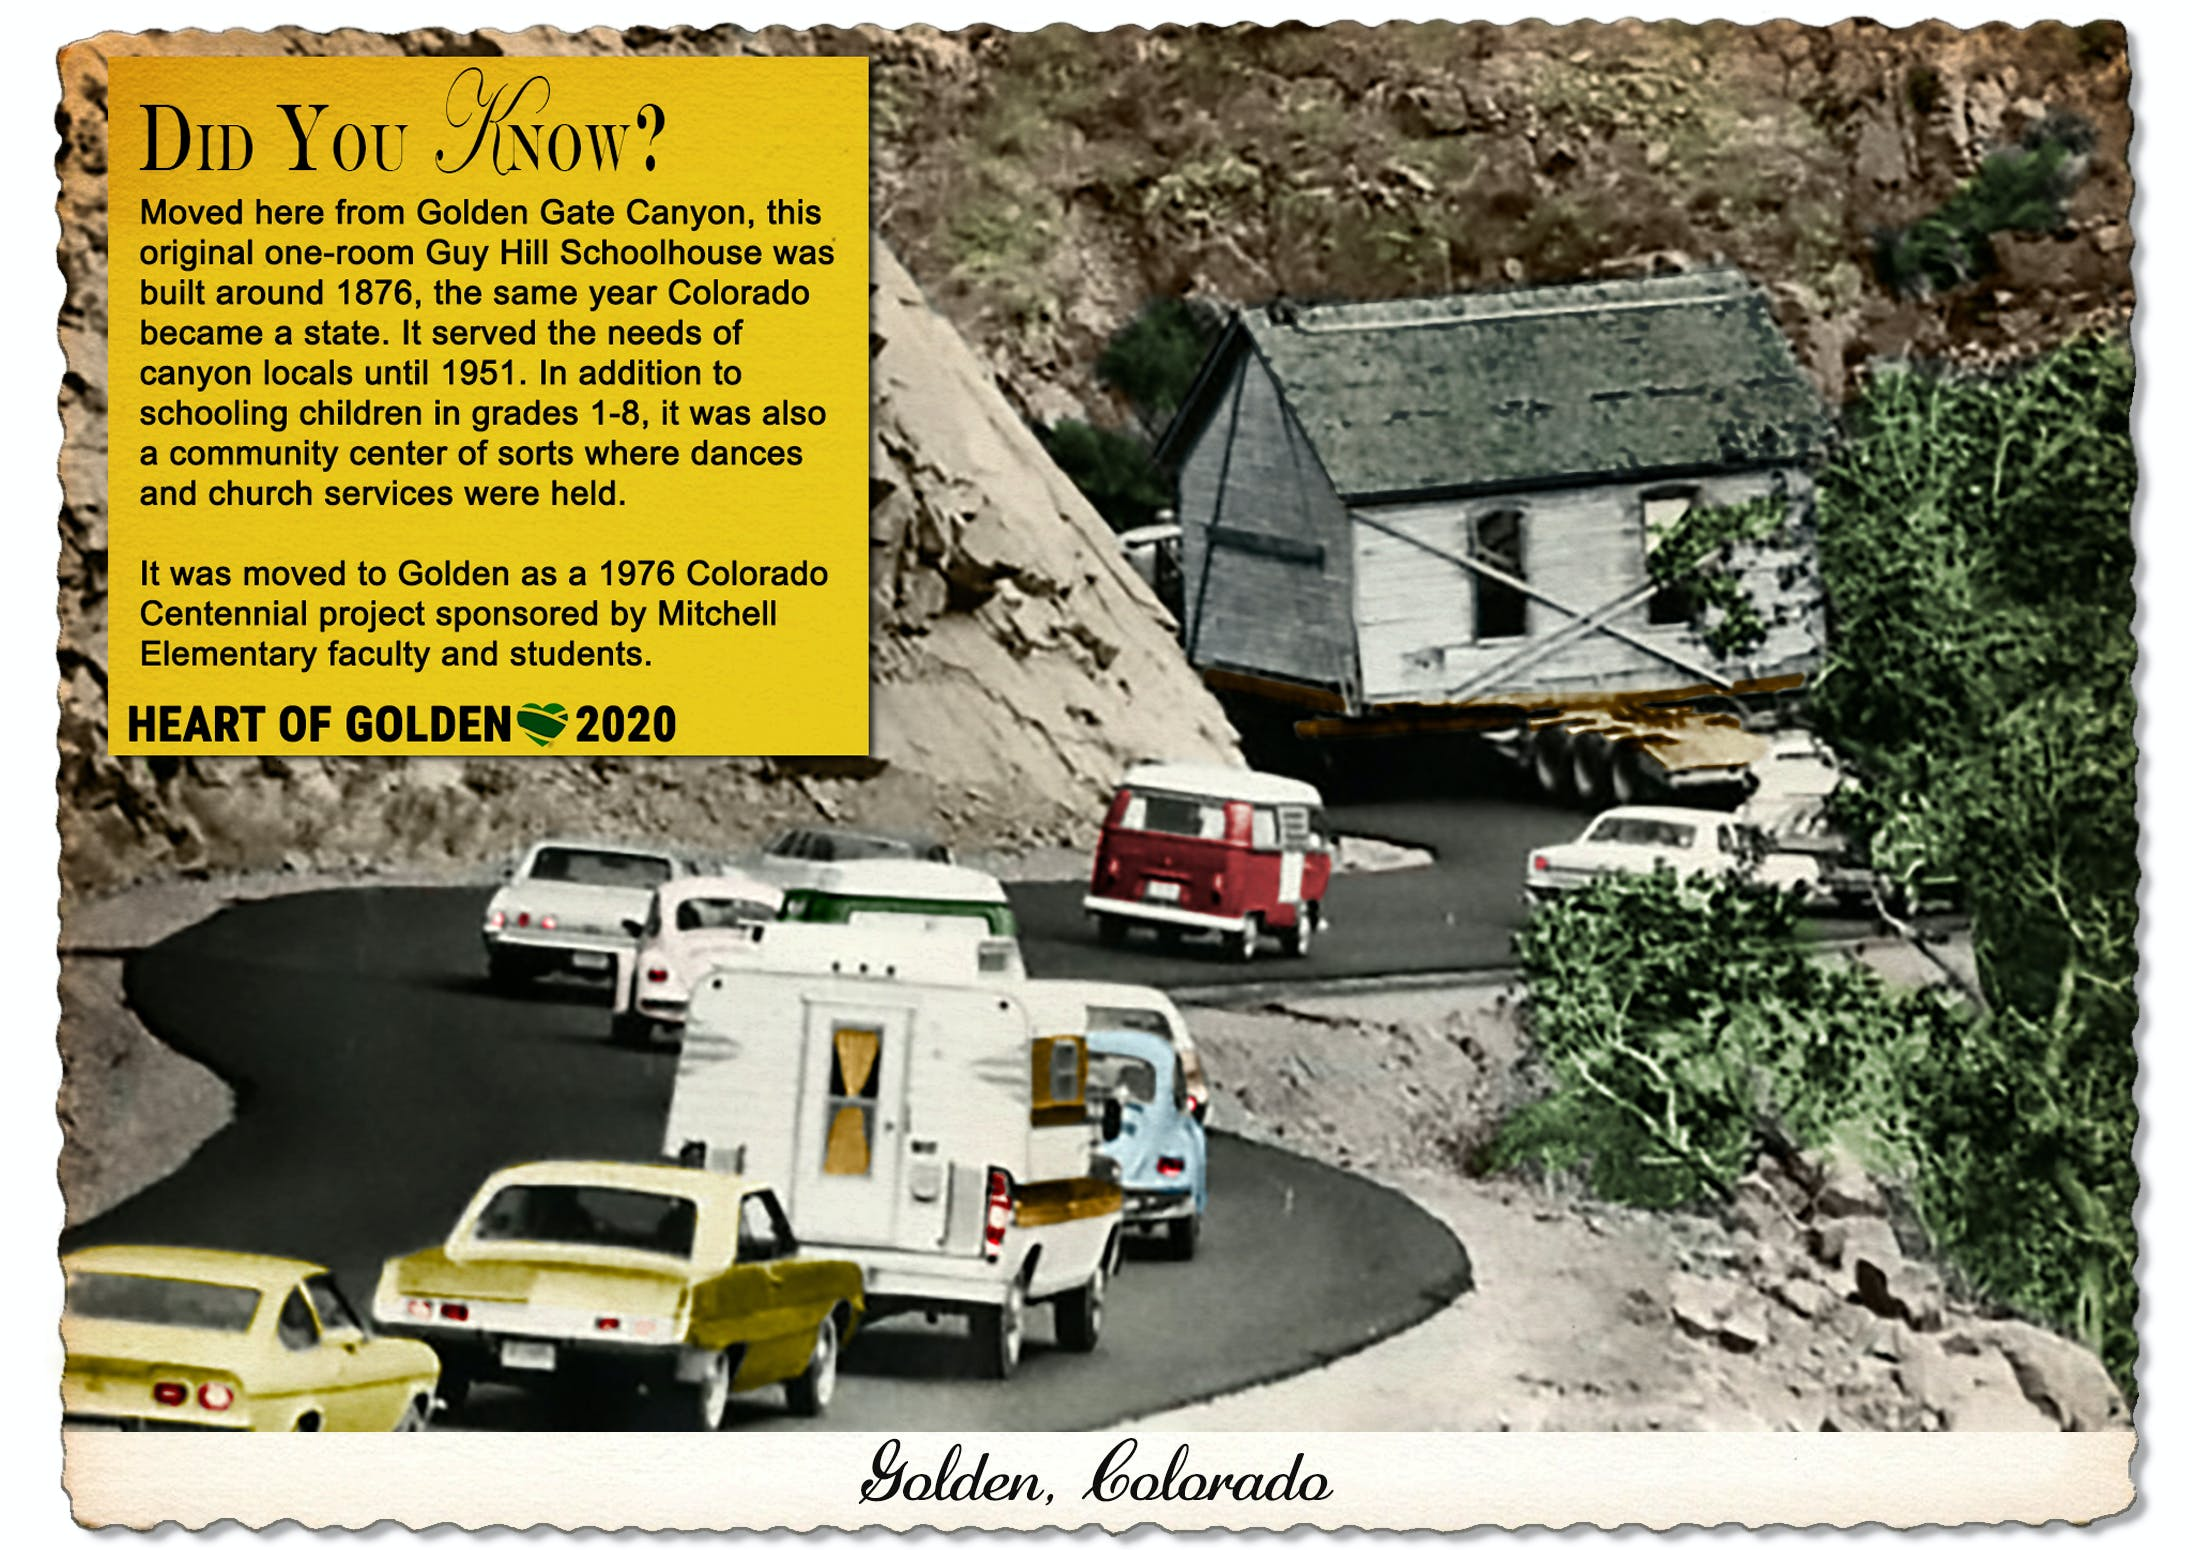 The Guy Hill School House now calls the Golden History Park home, but it was built in Golden Gate Canyon around 1876.